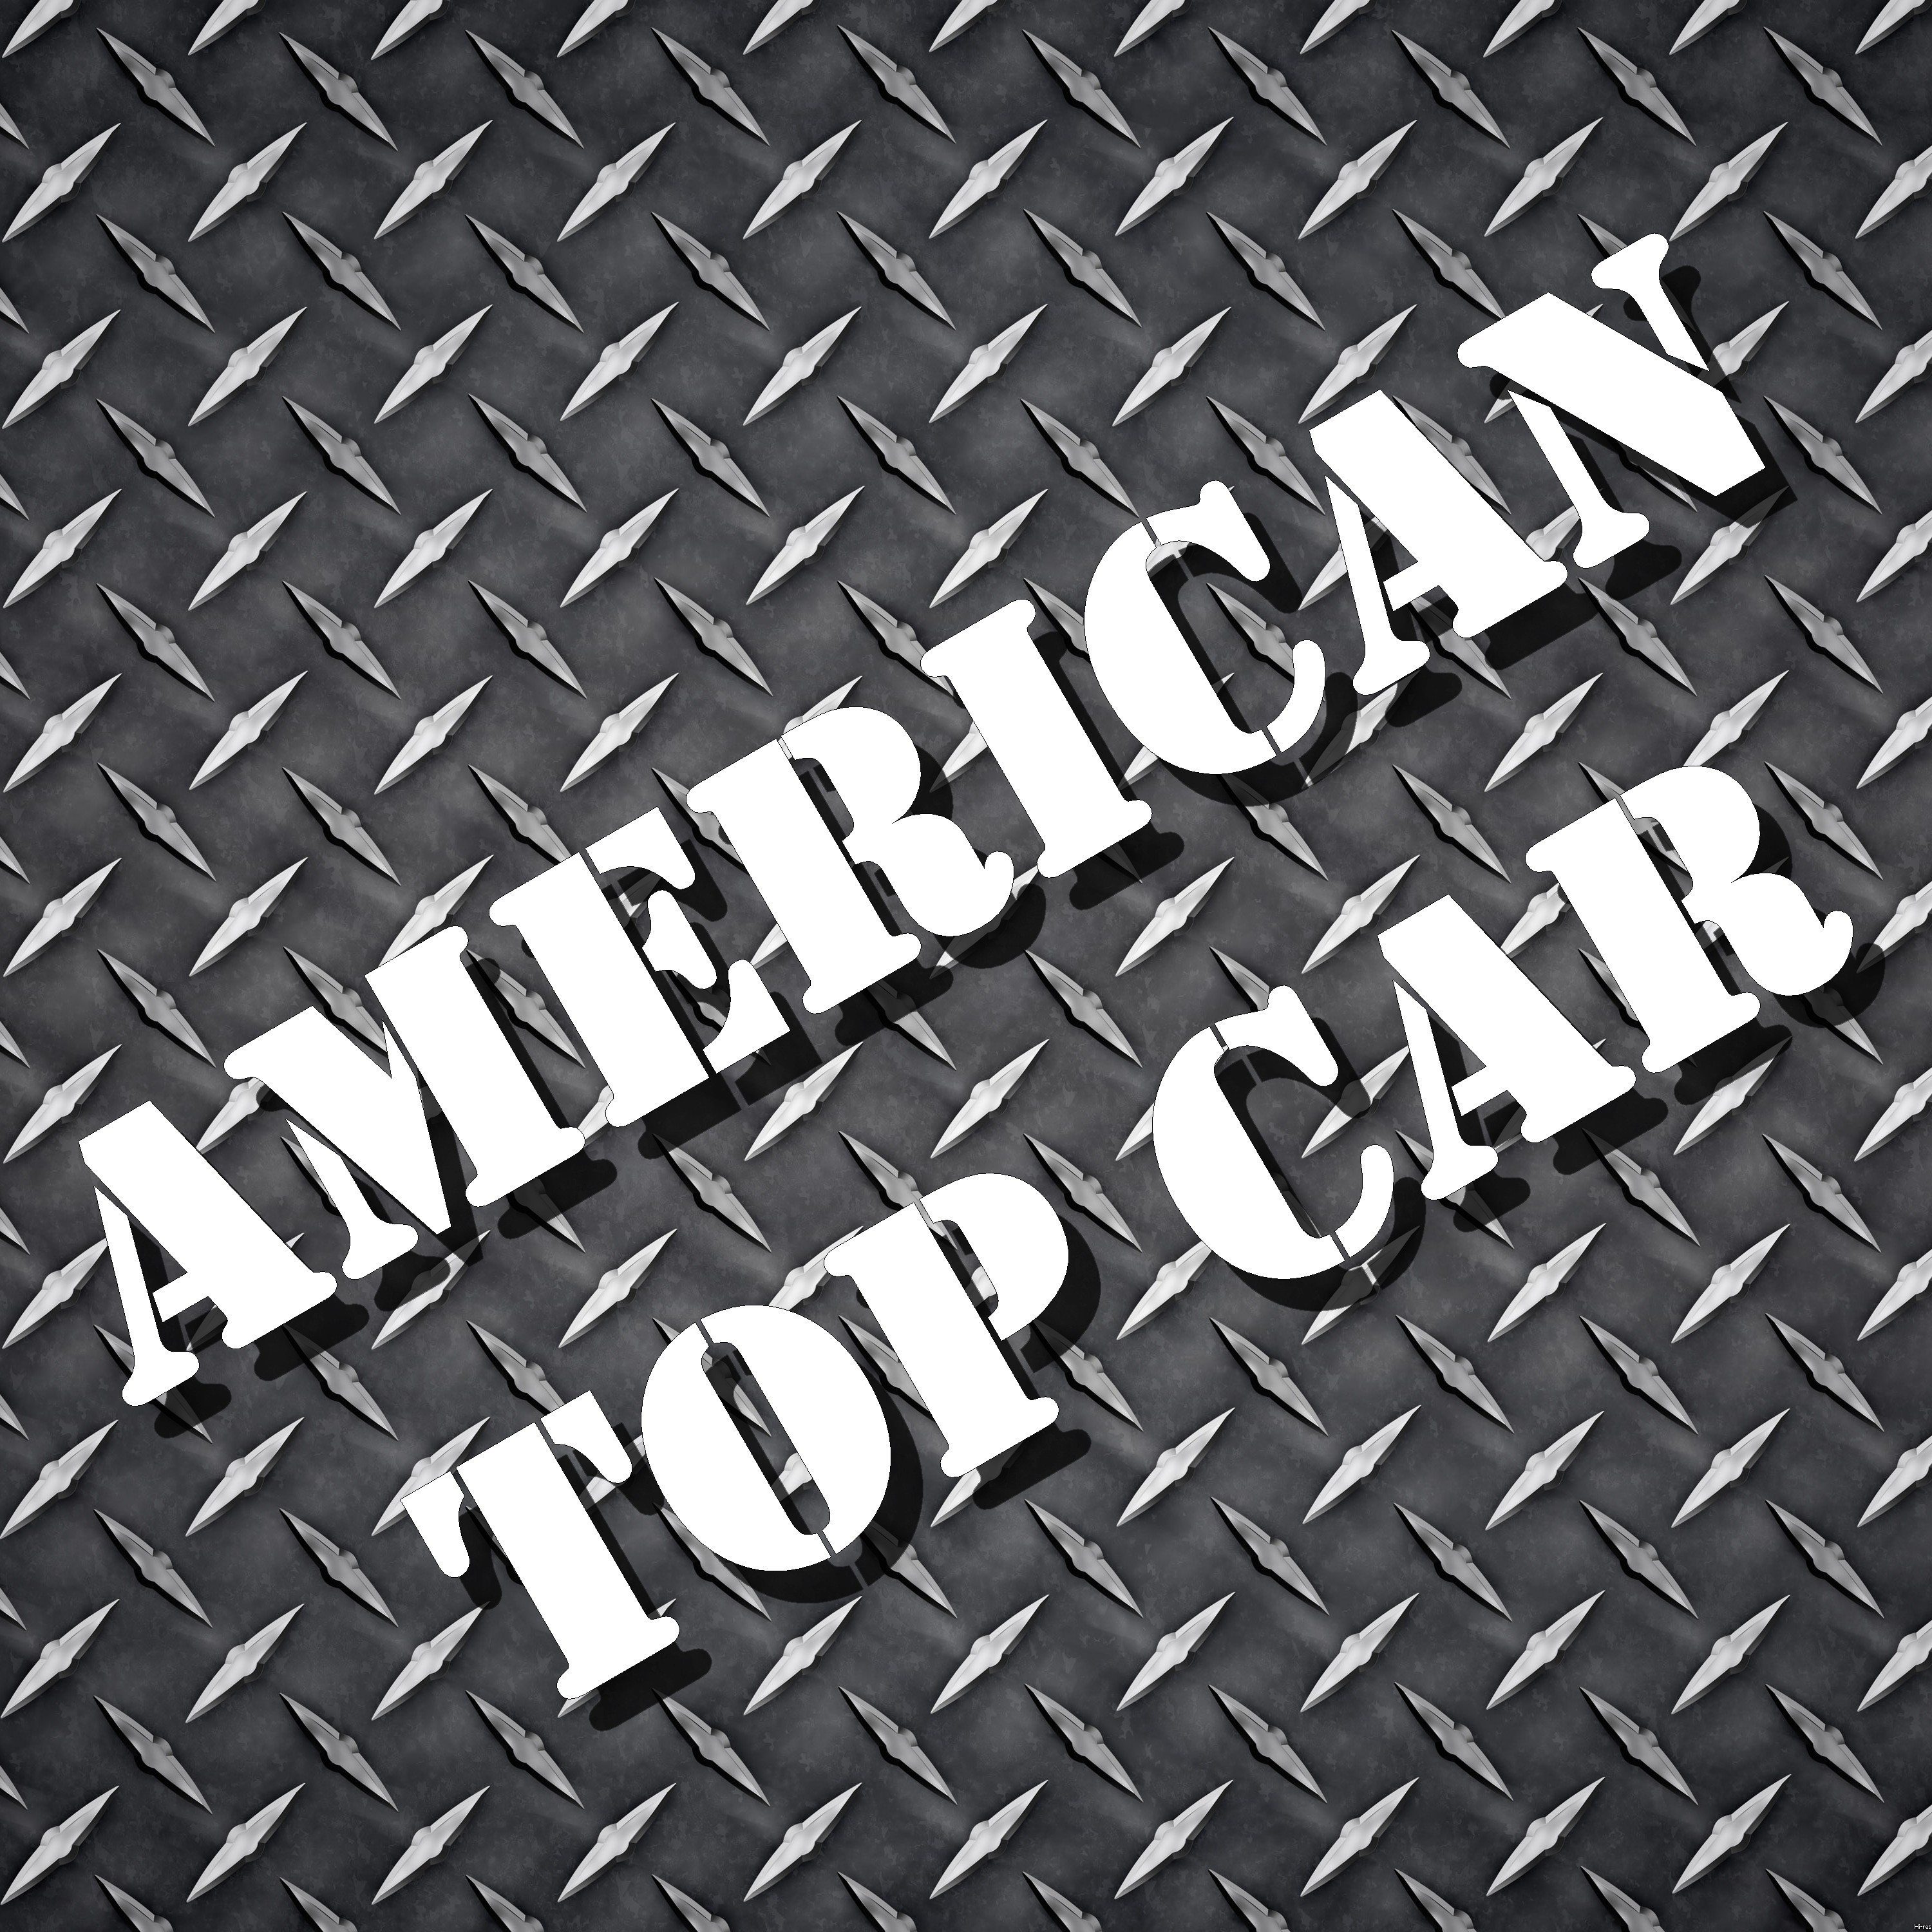 American Top Car, LLC